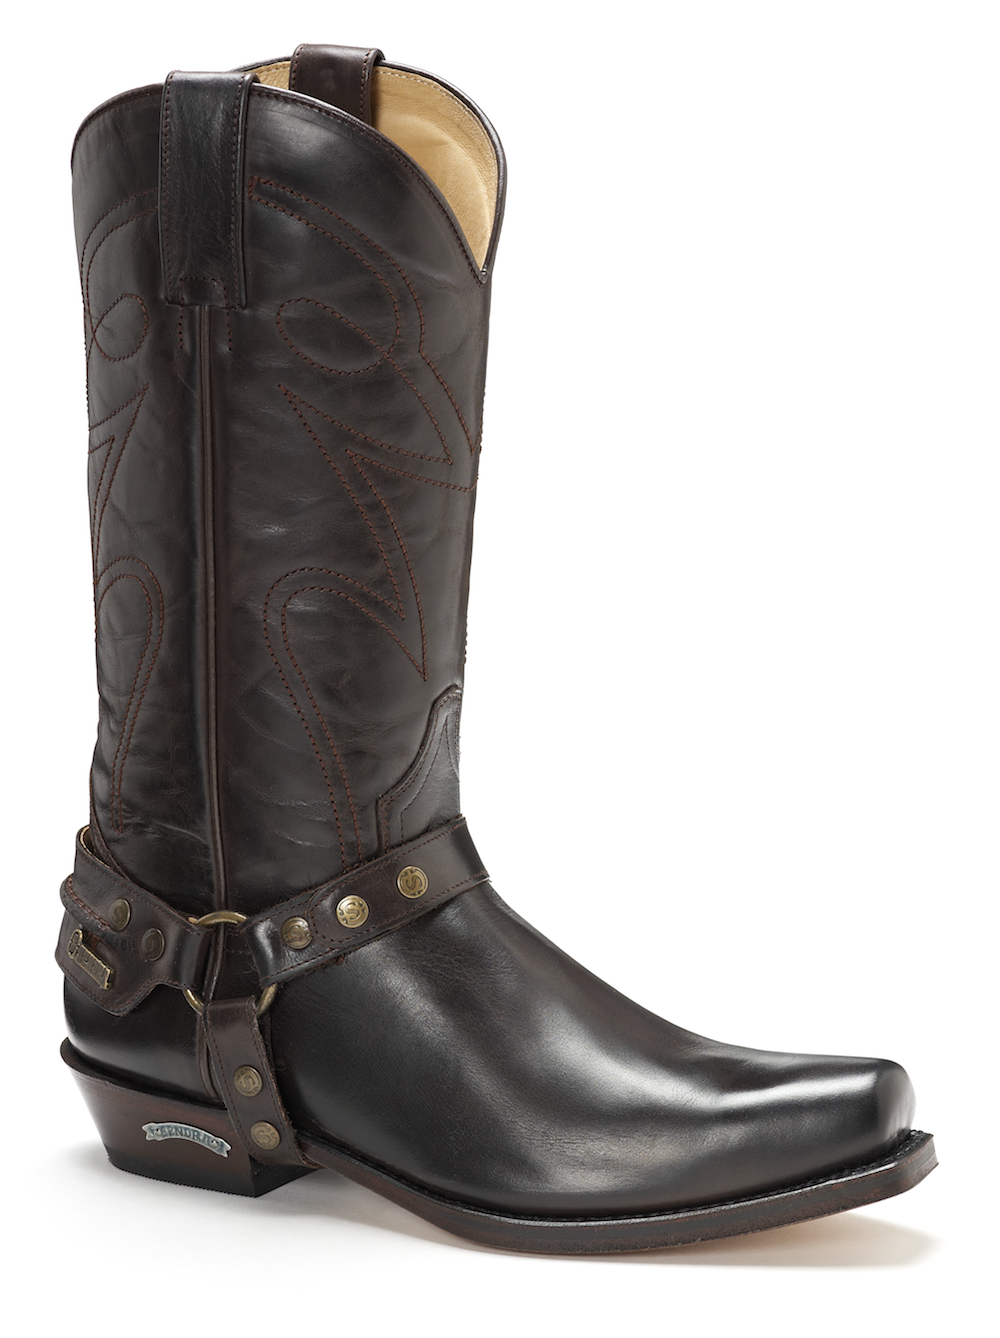 9a8619b492e Mens Sendra 4306 Brown Harness Boot in 2019 | Boots men | Boots ...